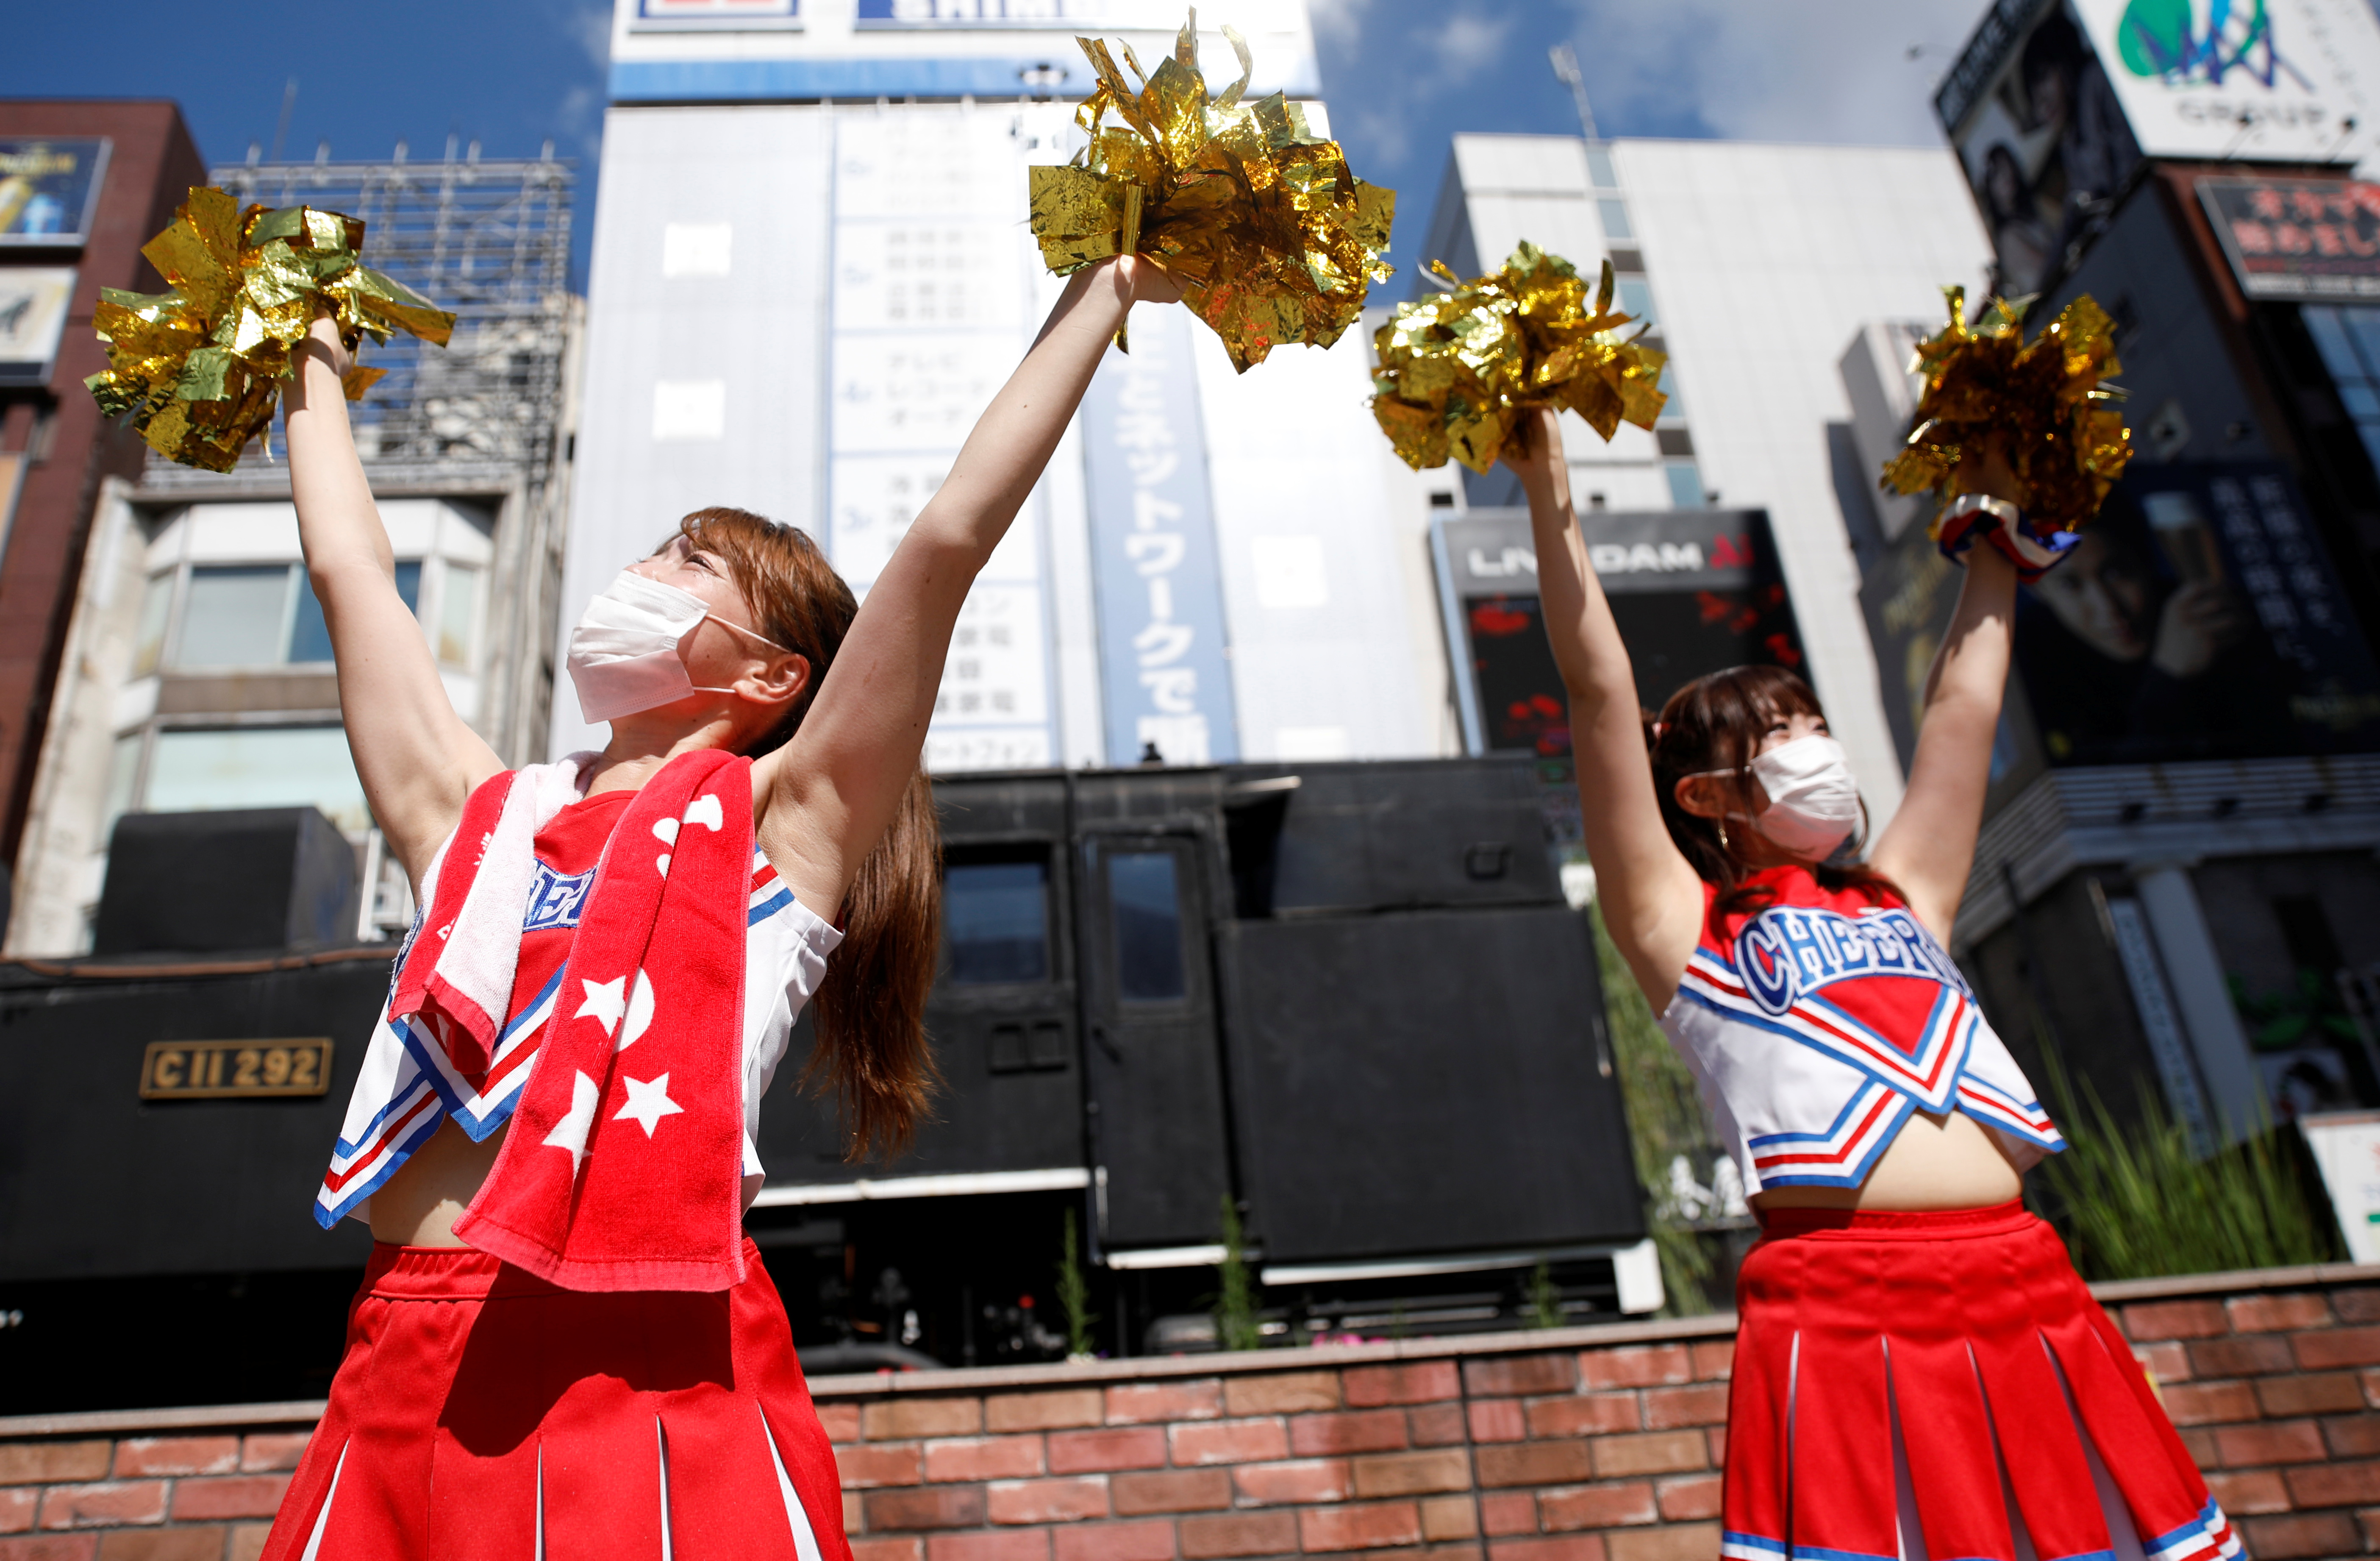 Cheerleaders from the